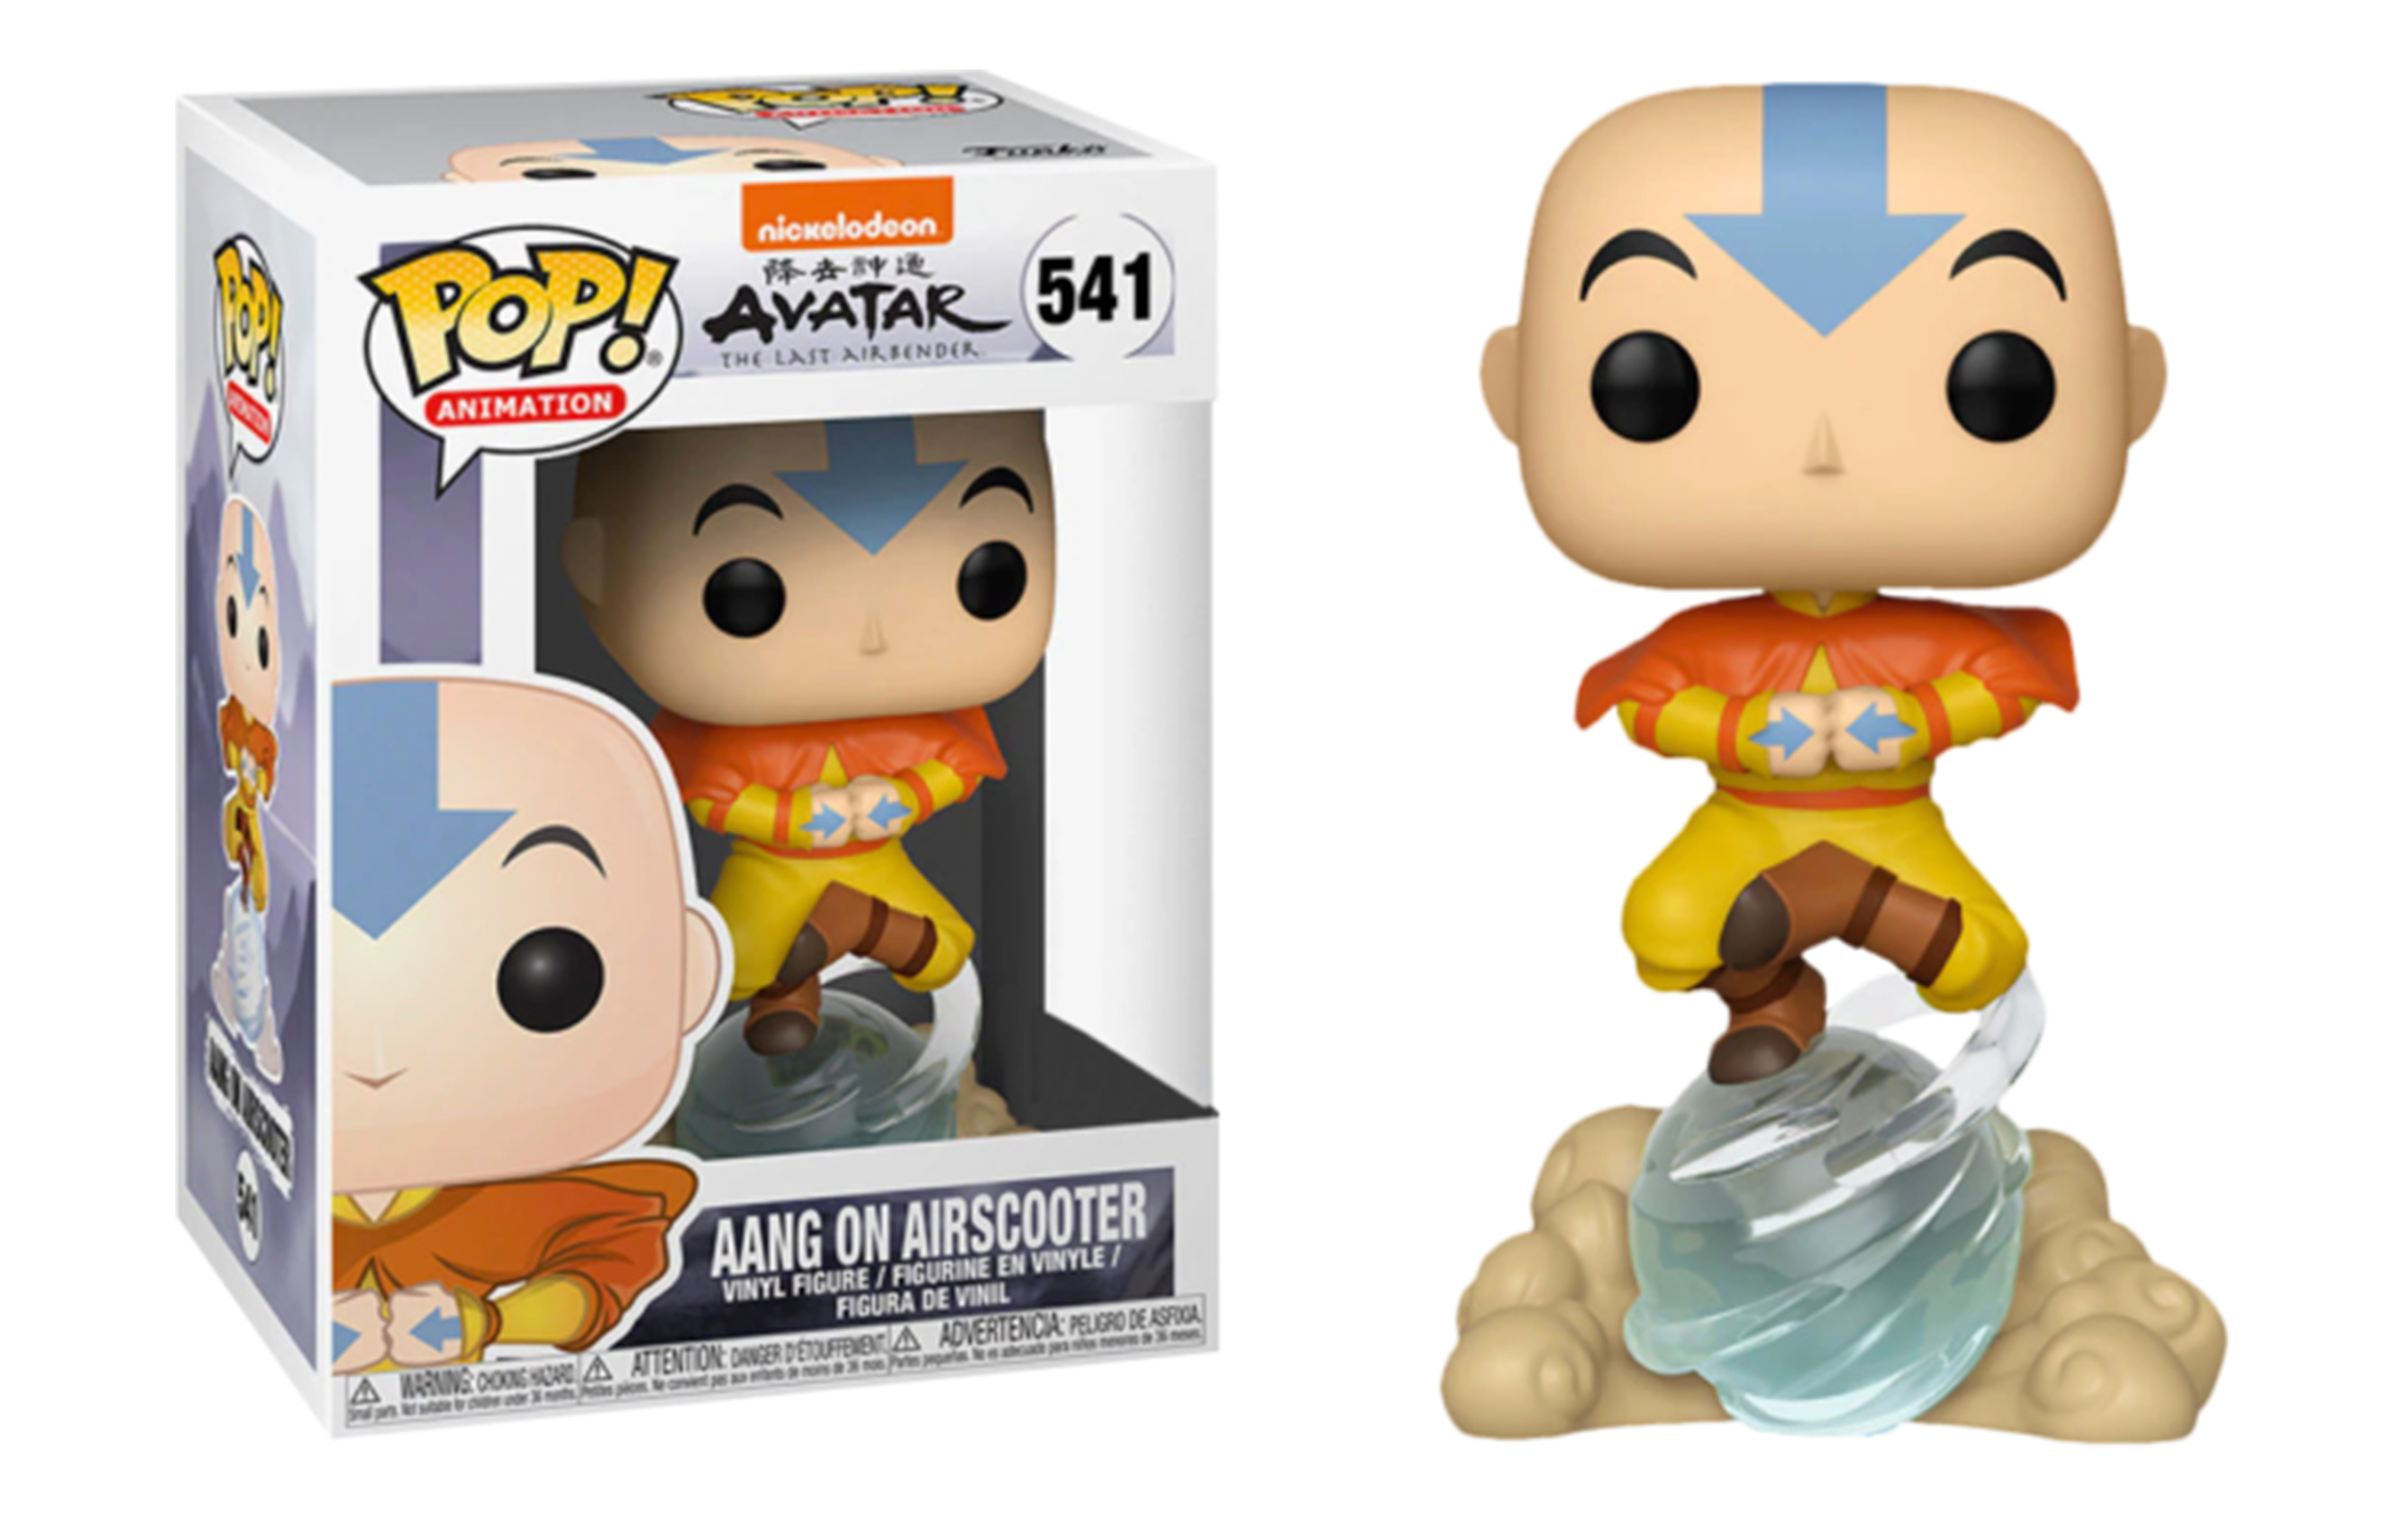 Avatar the Last Airbender 541 Funko POP Vinyl Figure